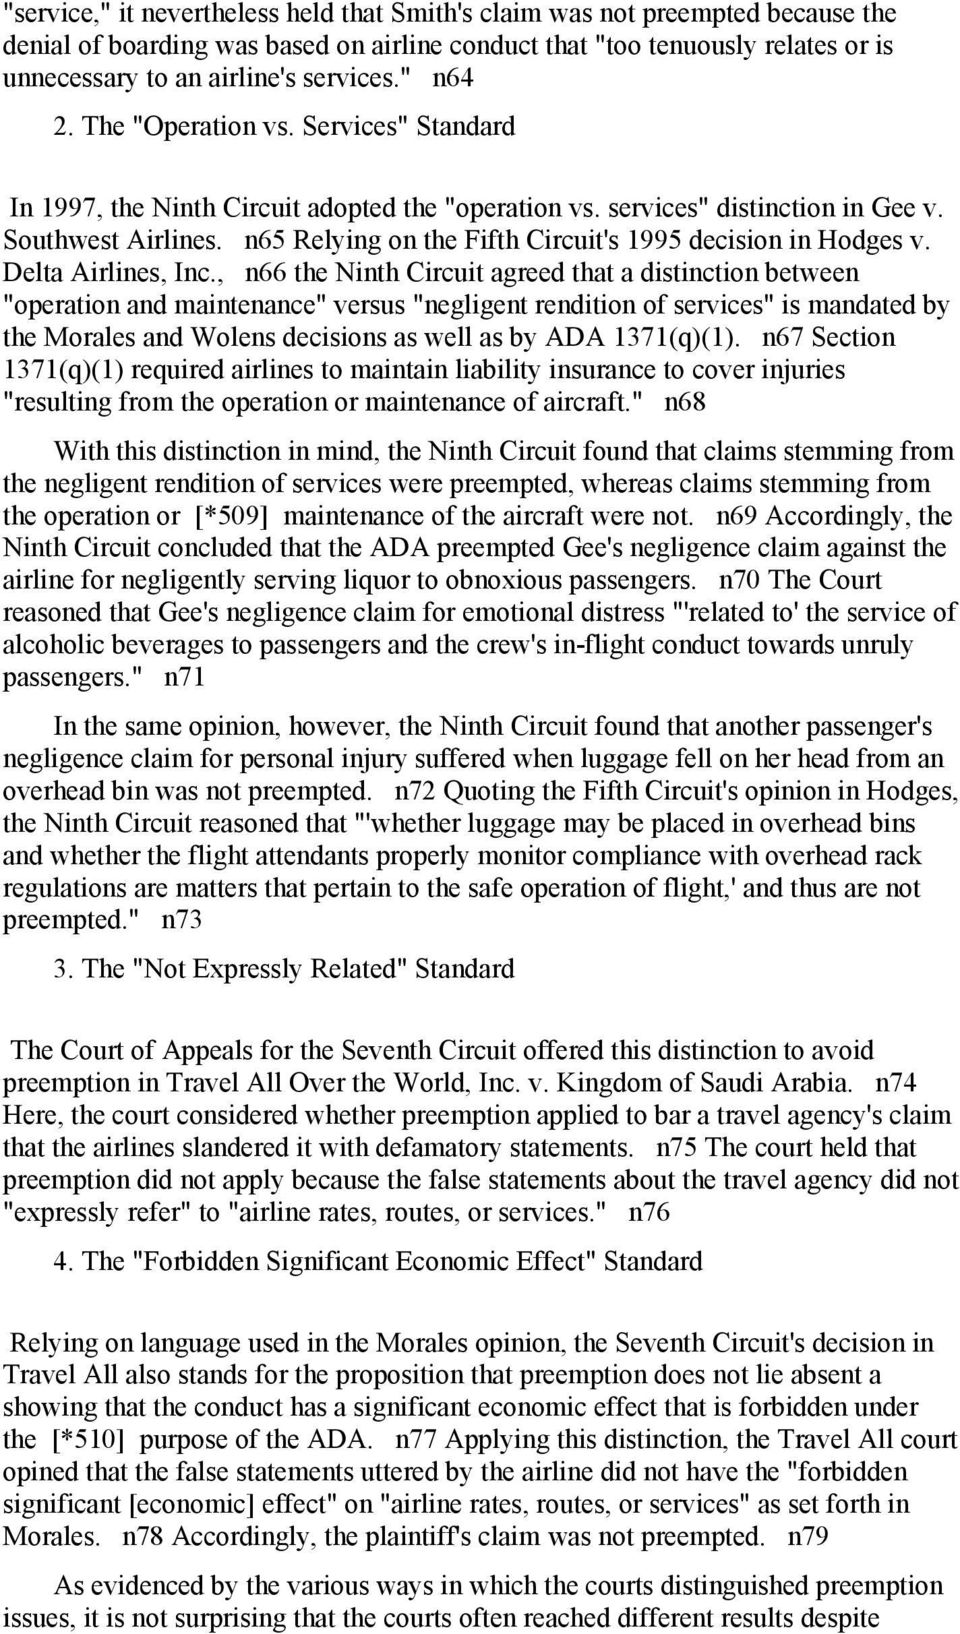 n65 Relying on the Fifth Circuit's 1995 decision in Hodges v. Delta Airlines, Inc.